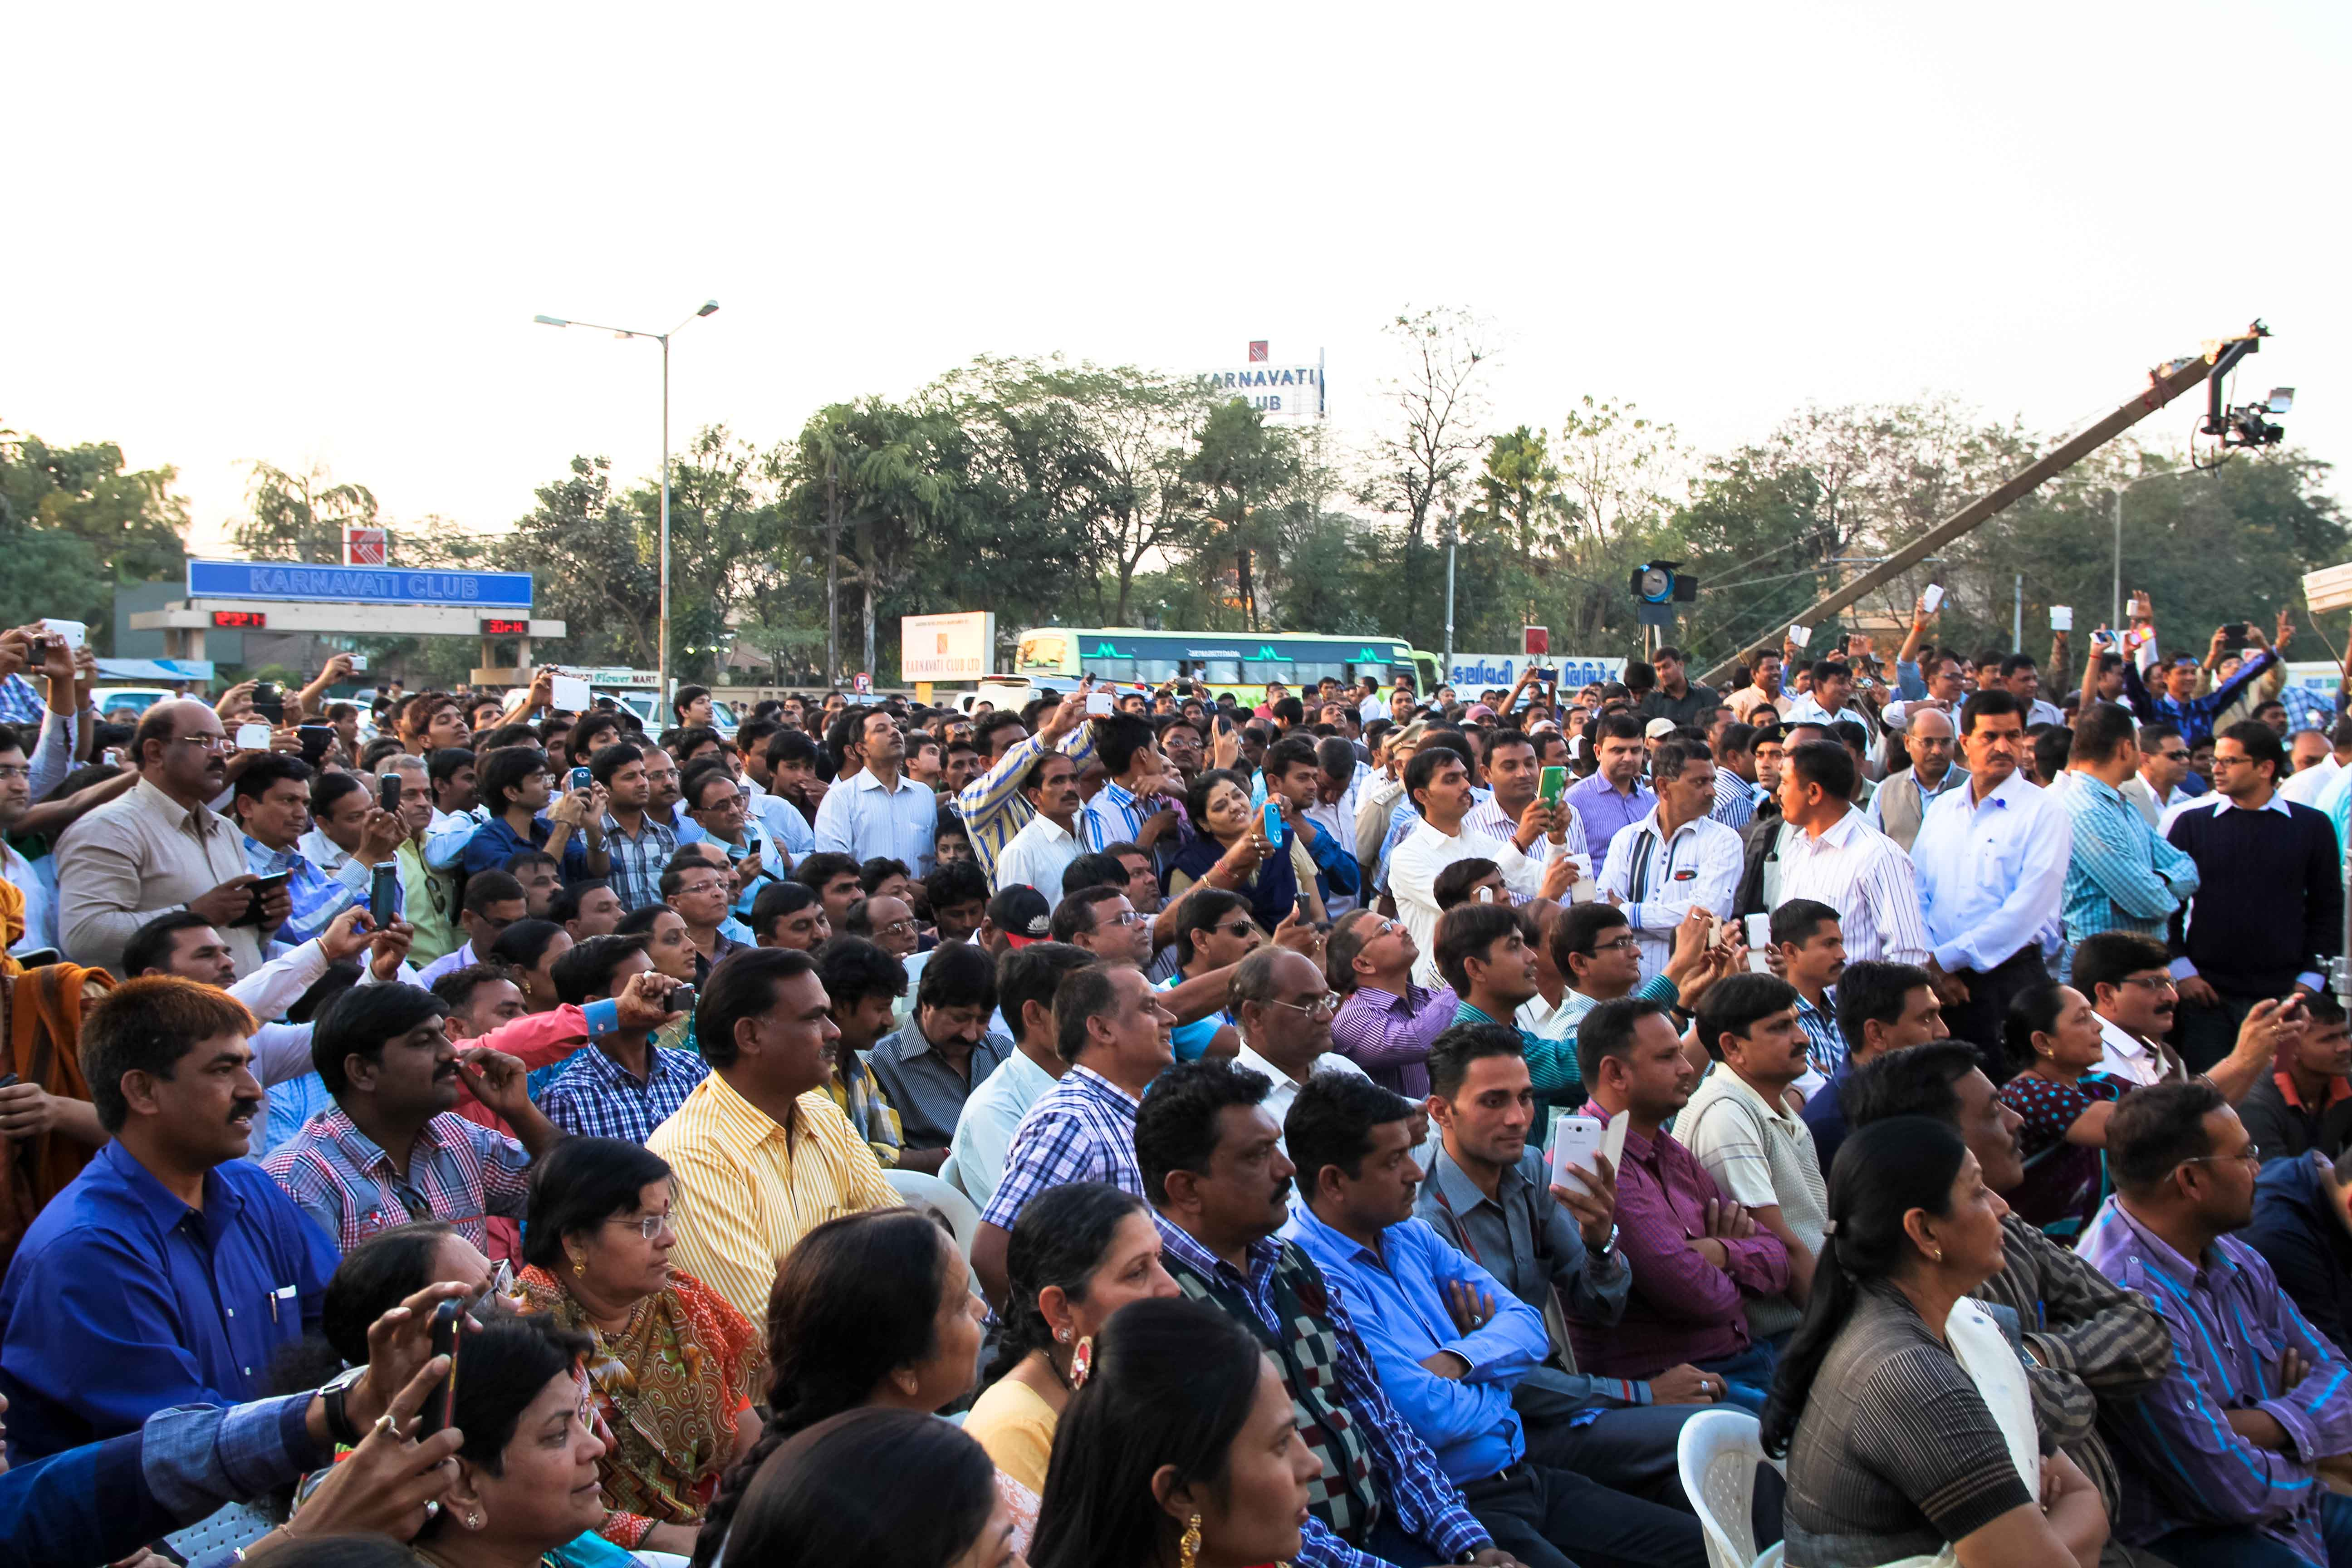 Members of the crowd at the first Chai Pe Charcha with NaMo in Ahmedabad, Gujarat on Feb. 12, 2014.